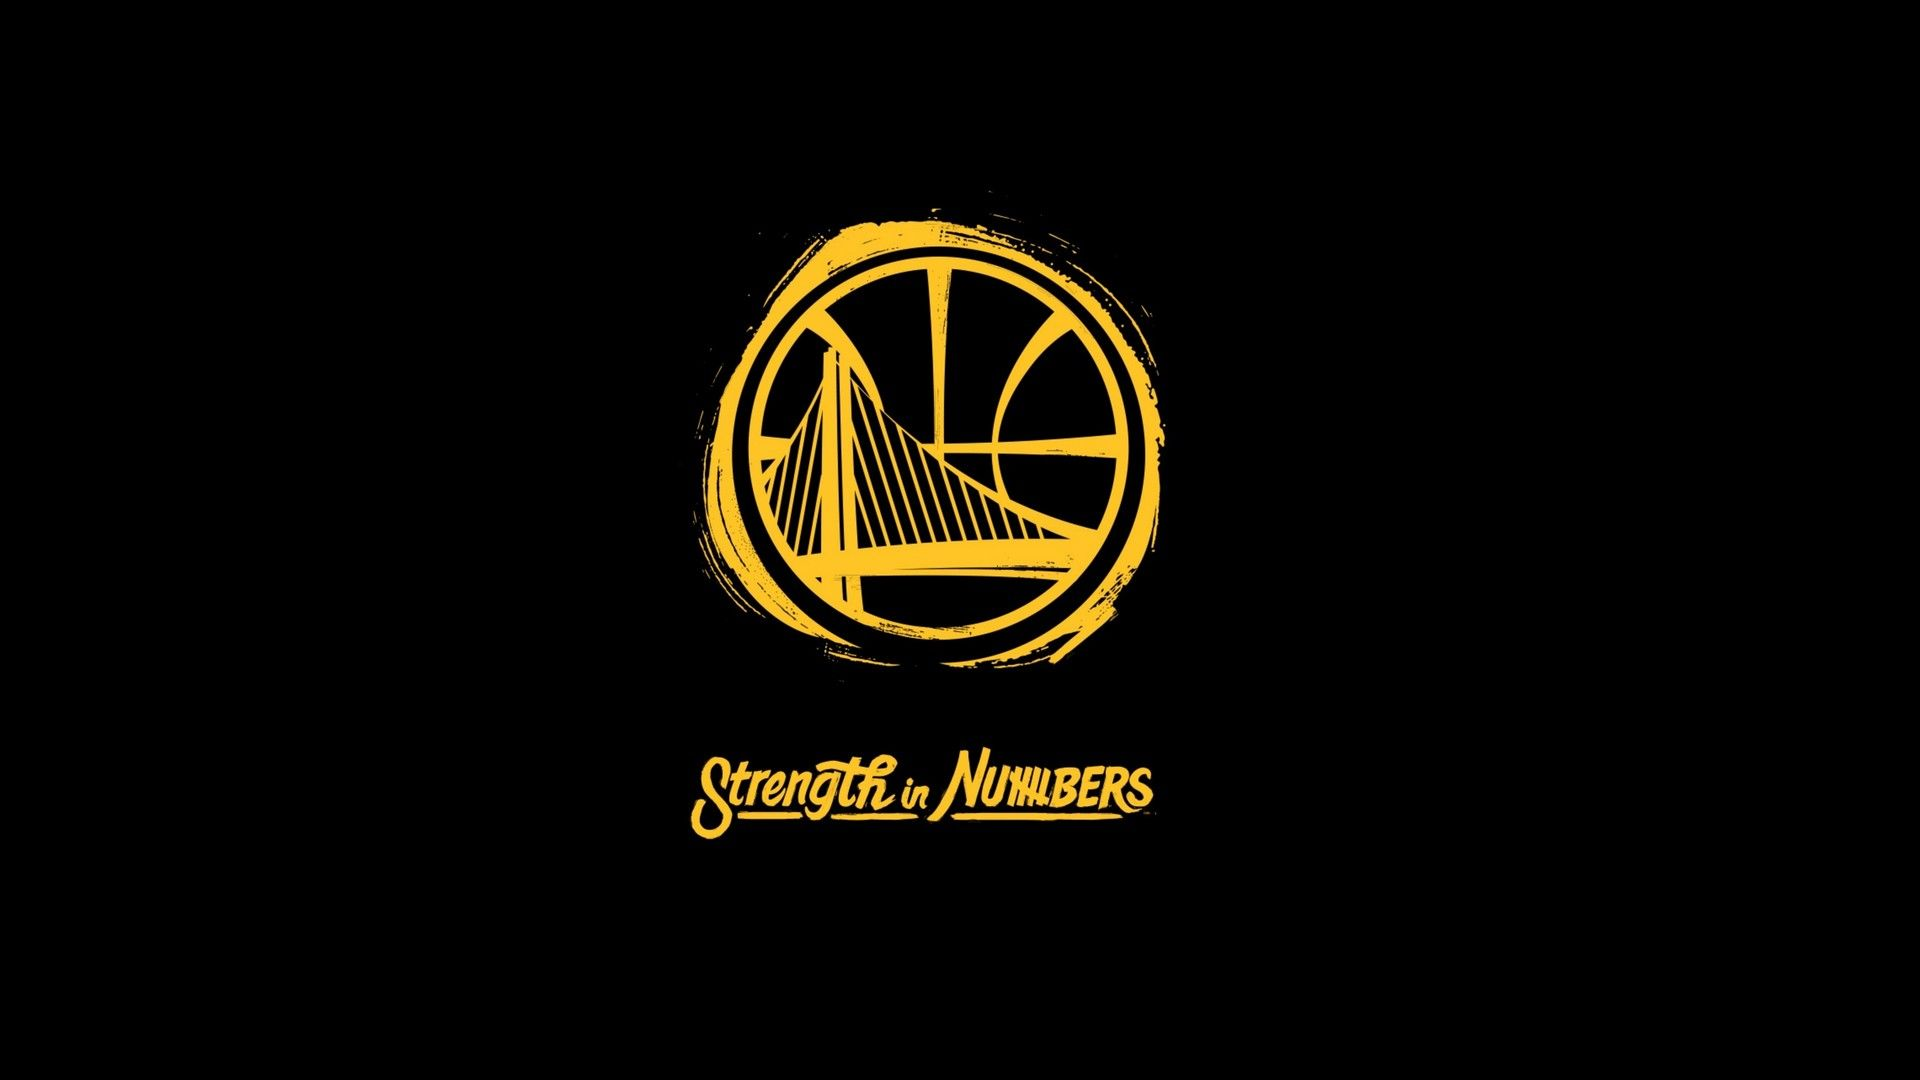 Wallpaper Desktop Golden State Warriors Hd 2021 Basketball Wallpaper Golden State Warriors Golden State Warriors Wallpaper Steph Curry Wallpapers